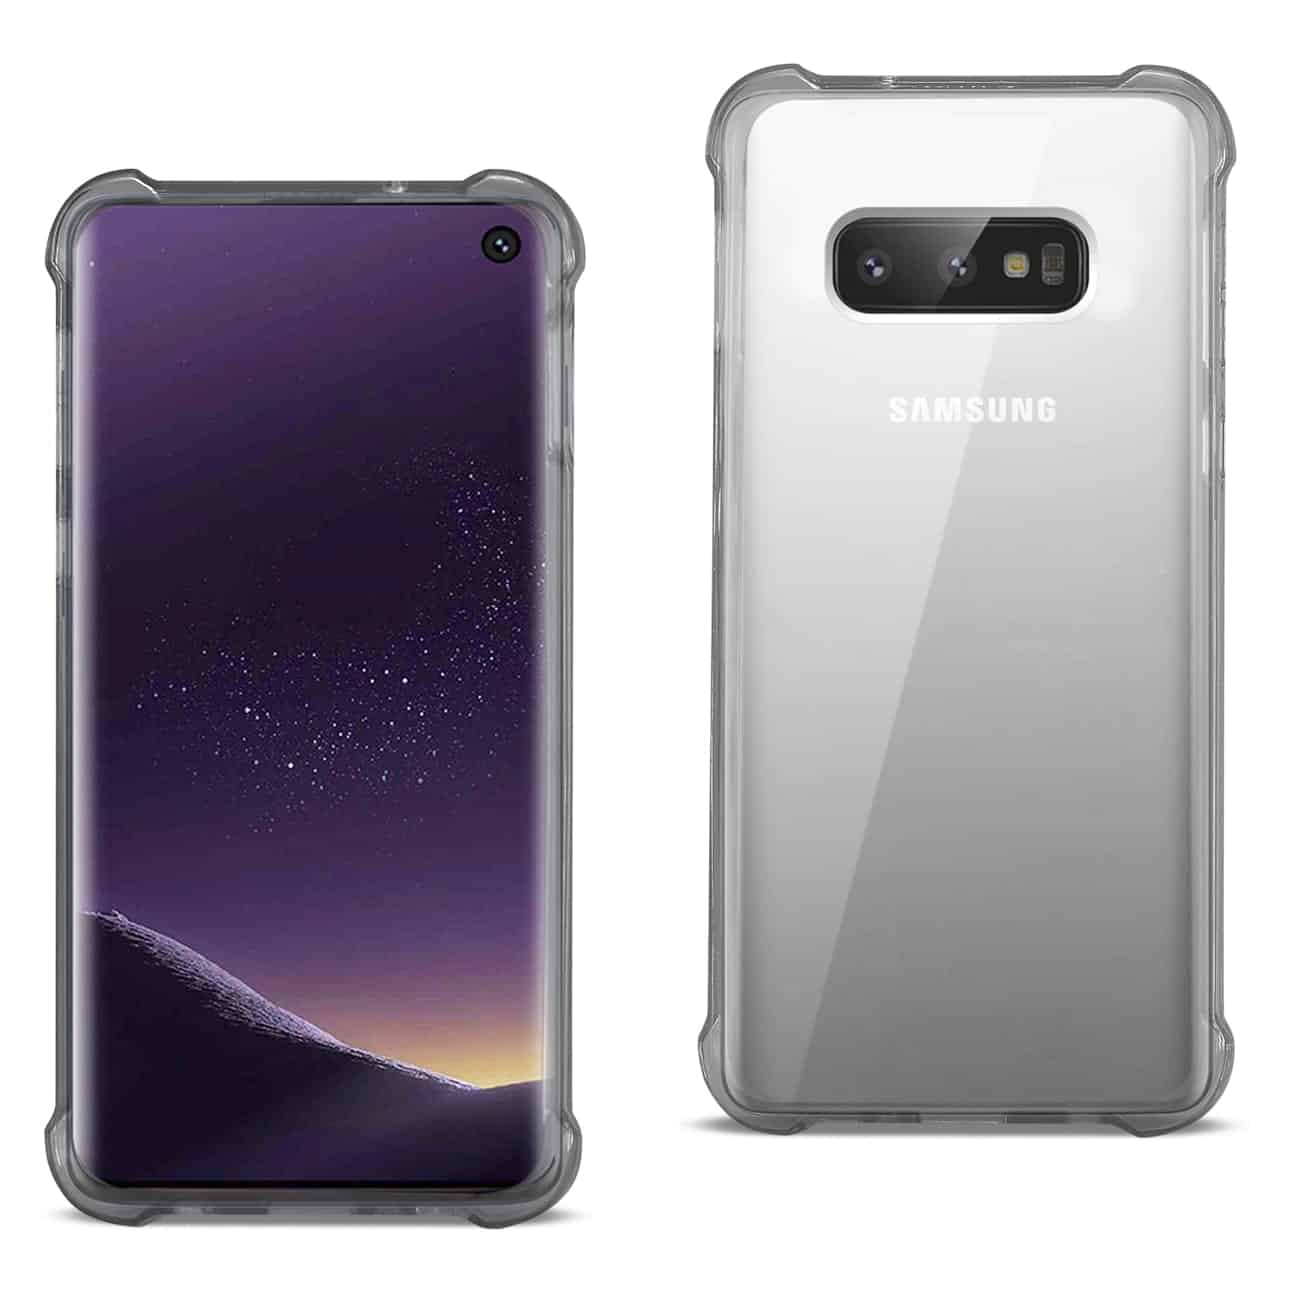 SAMSUNG GALAXY S10 Lite(S10e) Clear Bumper Case With Air Cushion Protection In Clear Black